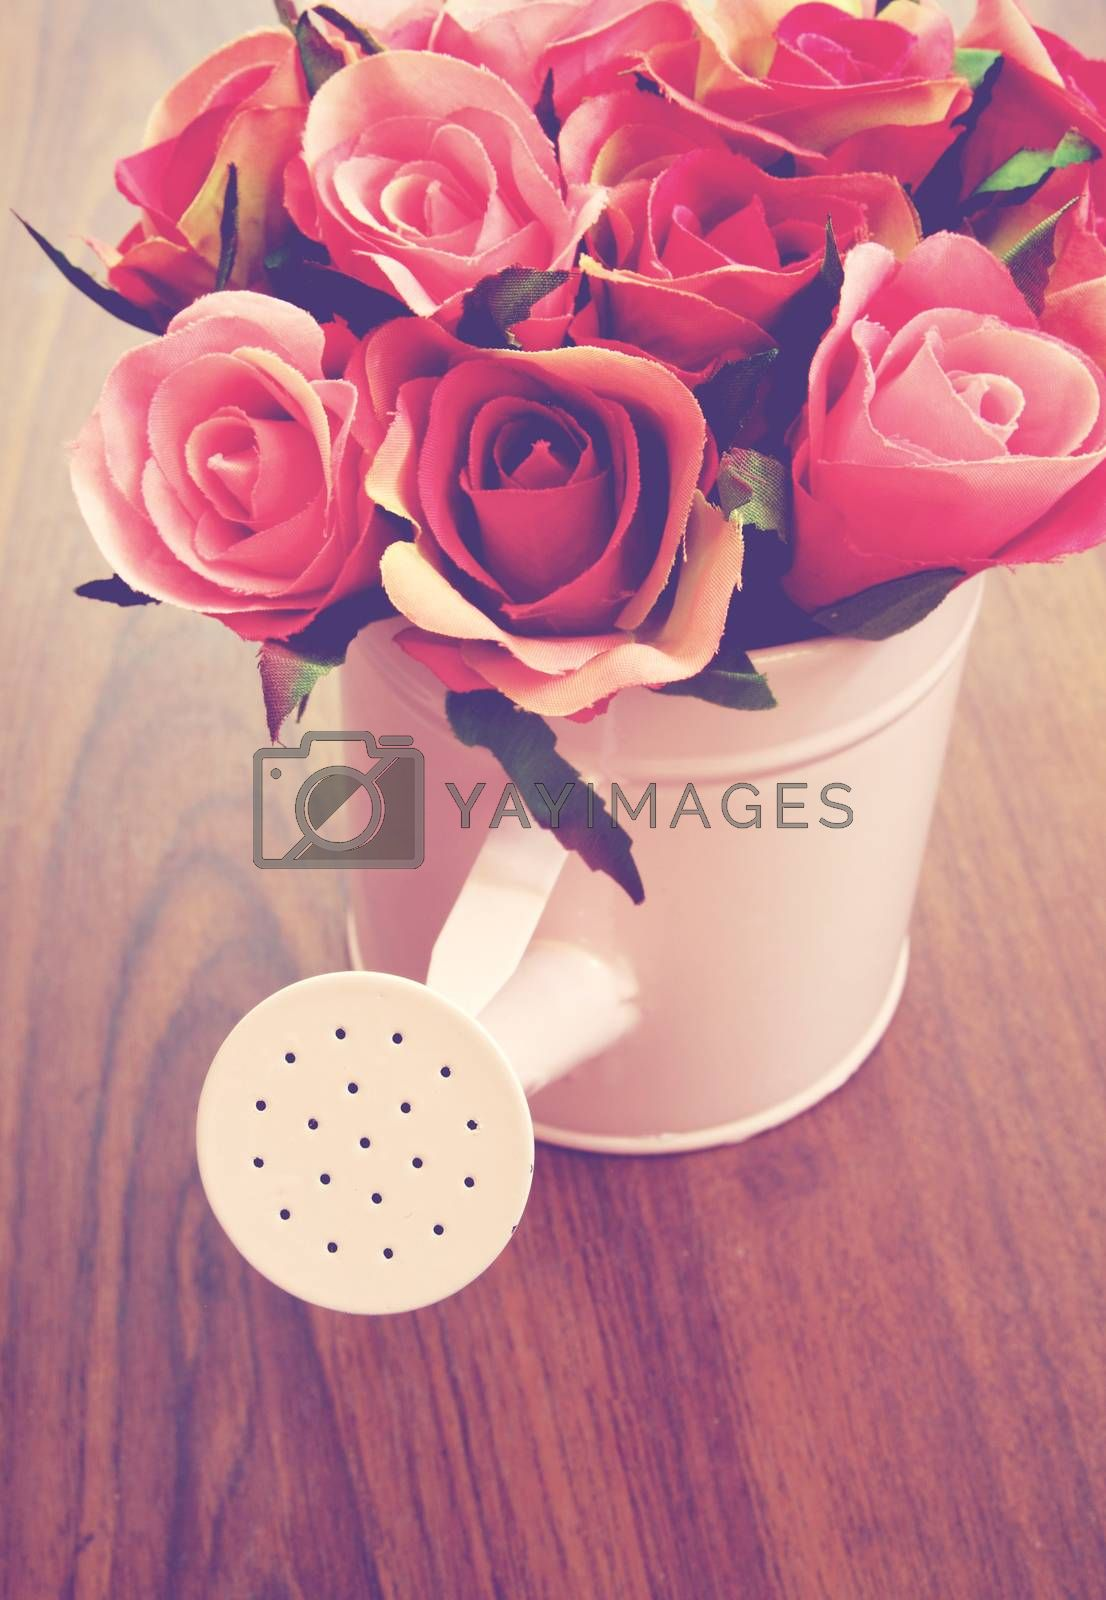 Roses in watering can for decoration with retro filter effect